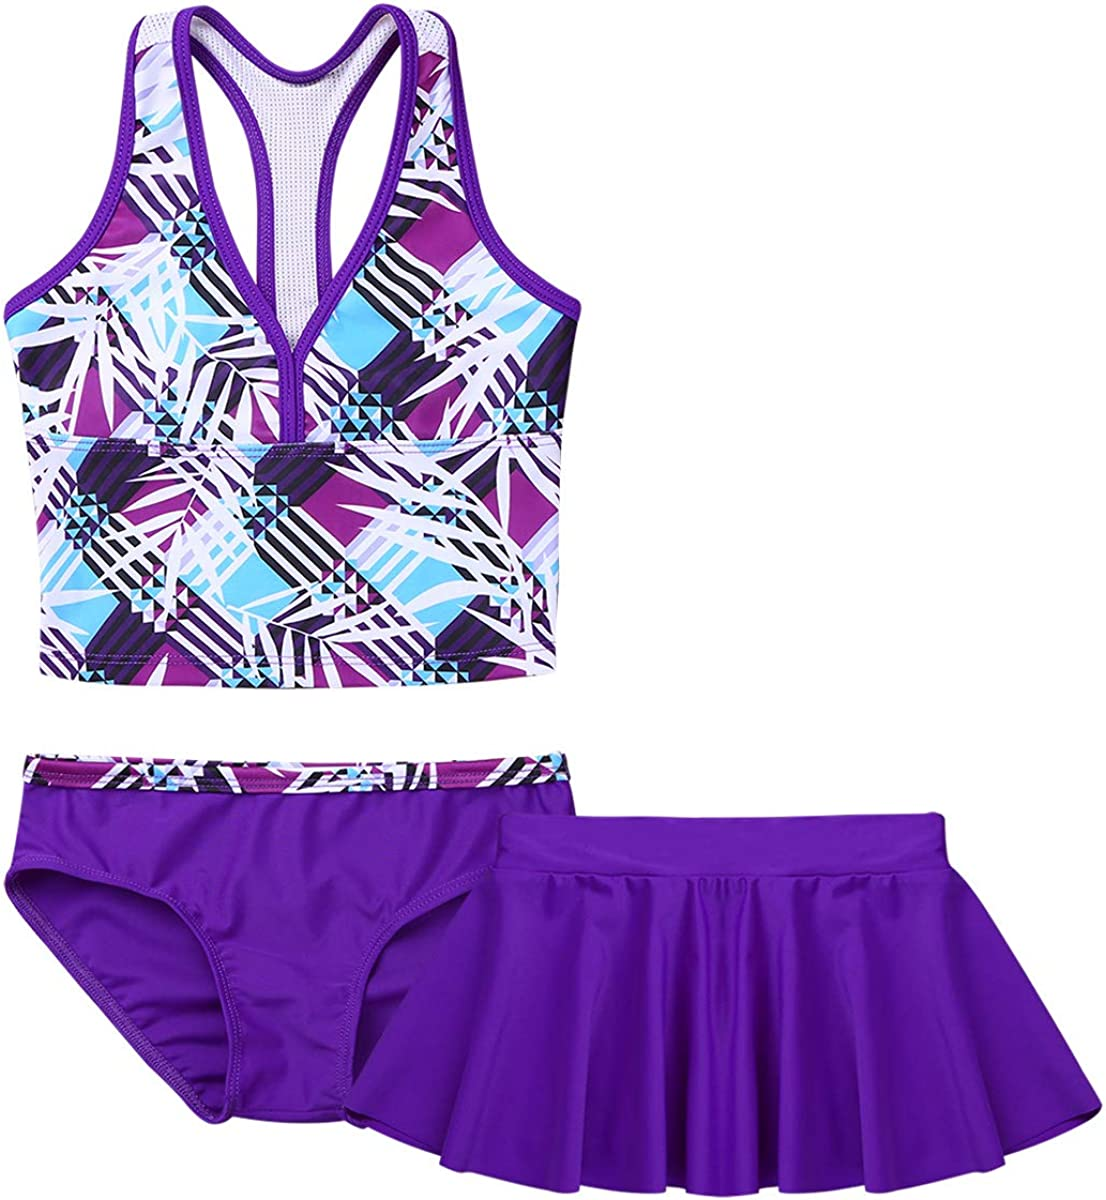 dPois Kids Girls 3Pcs Tankini Set Swimsuit Swimwear Bathing Suit Racerback Tops with Swimming Briefs and Skirt